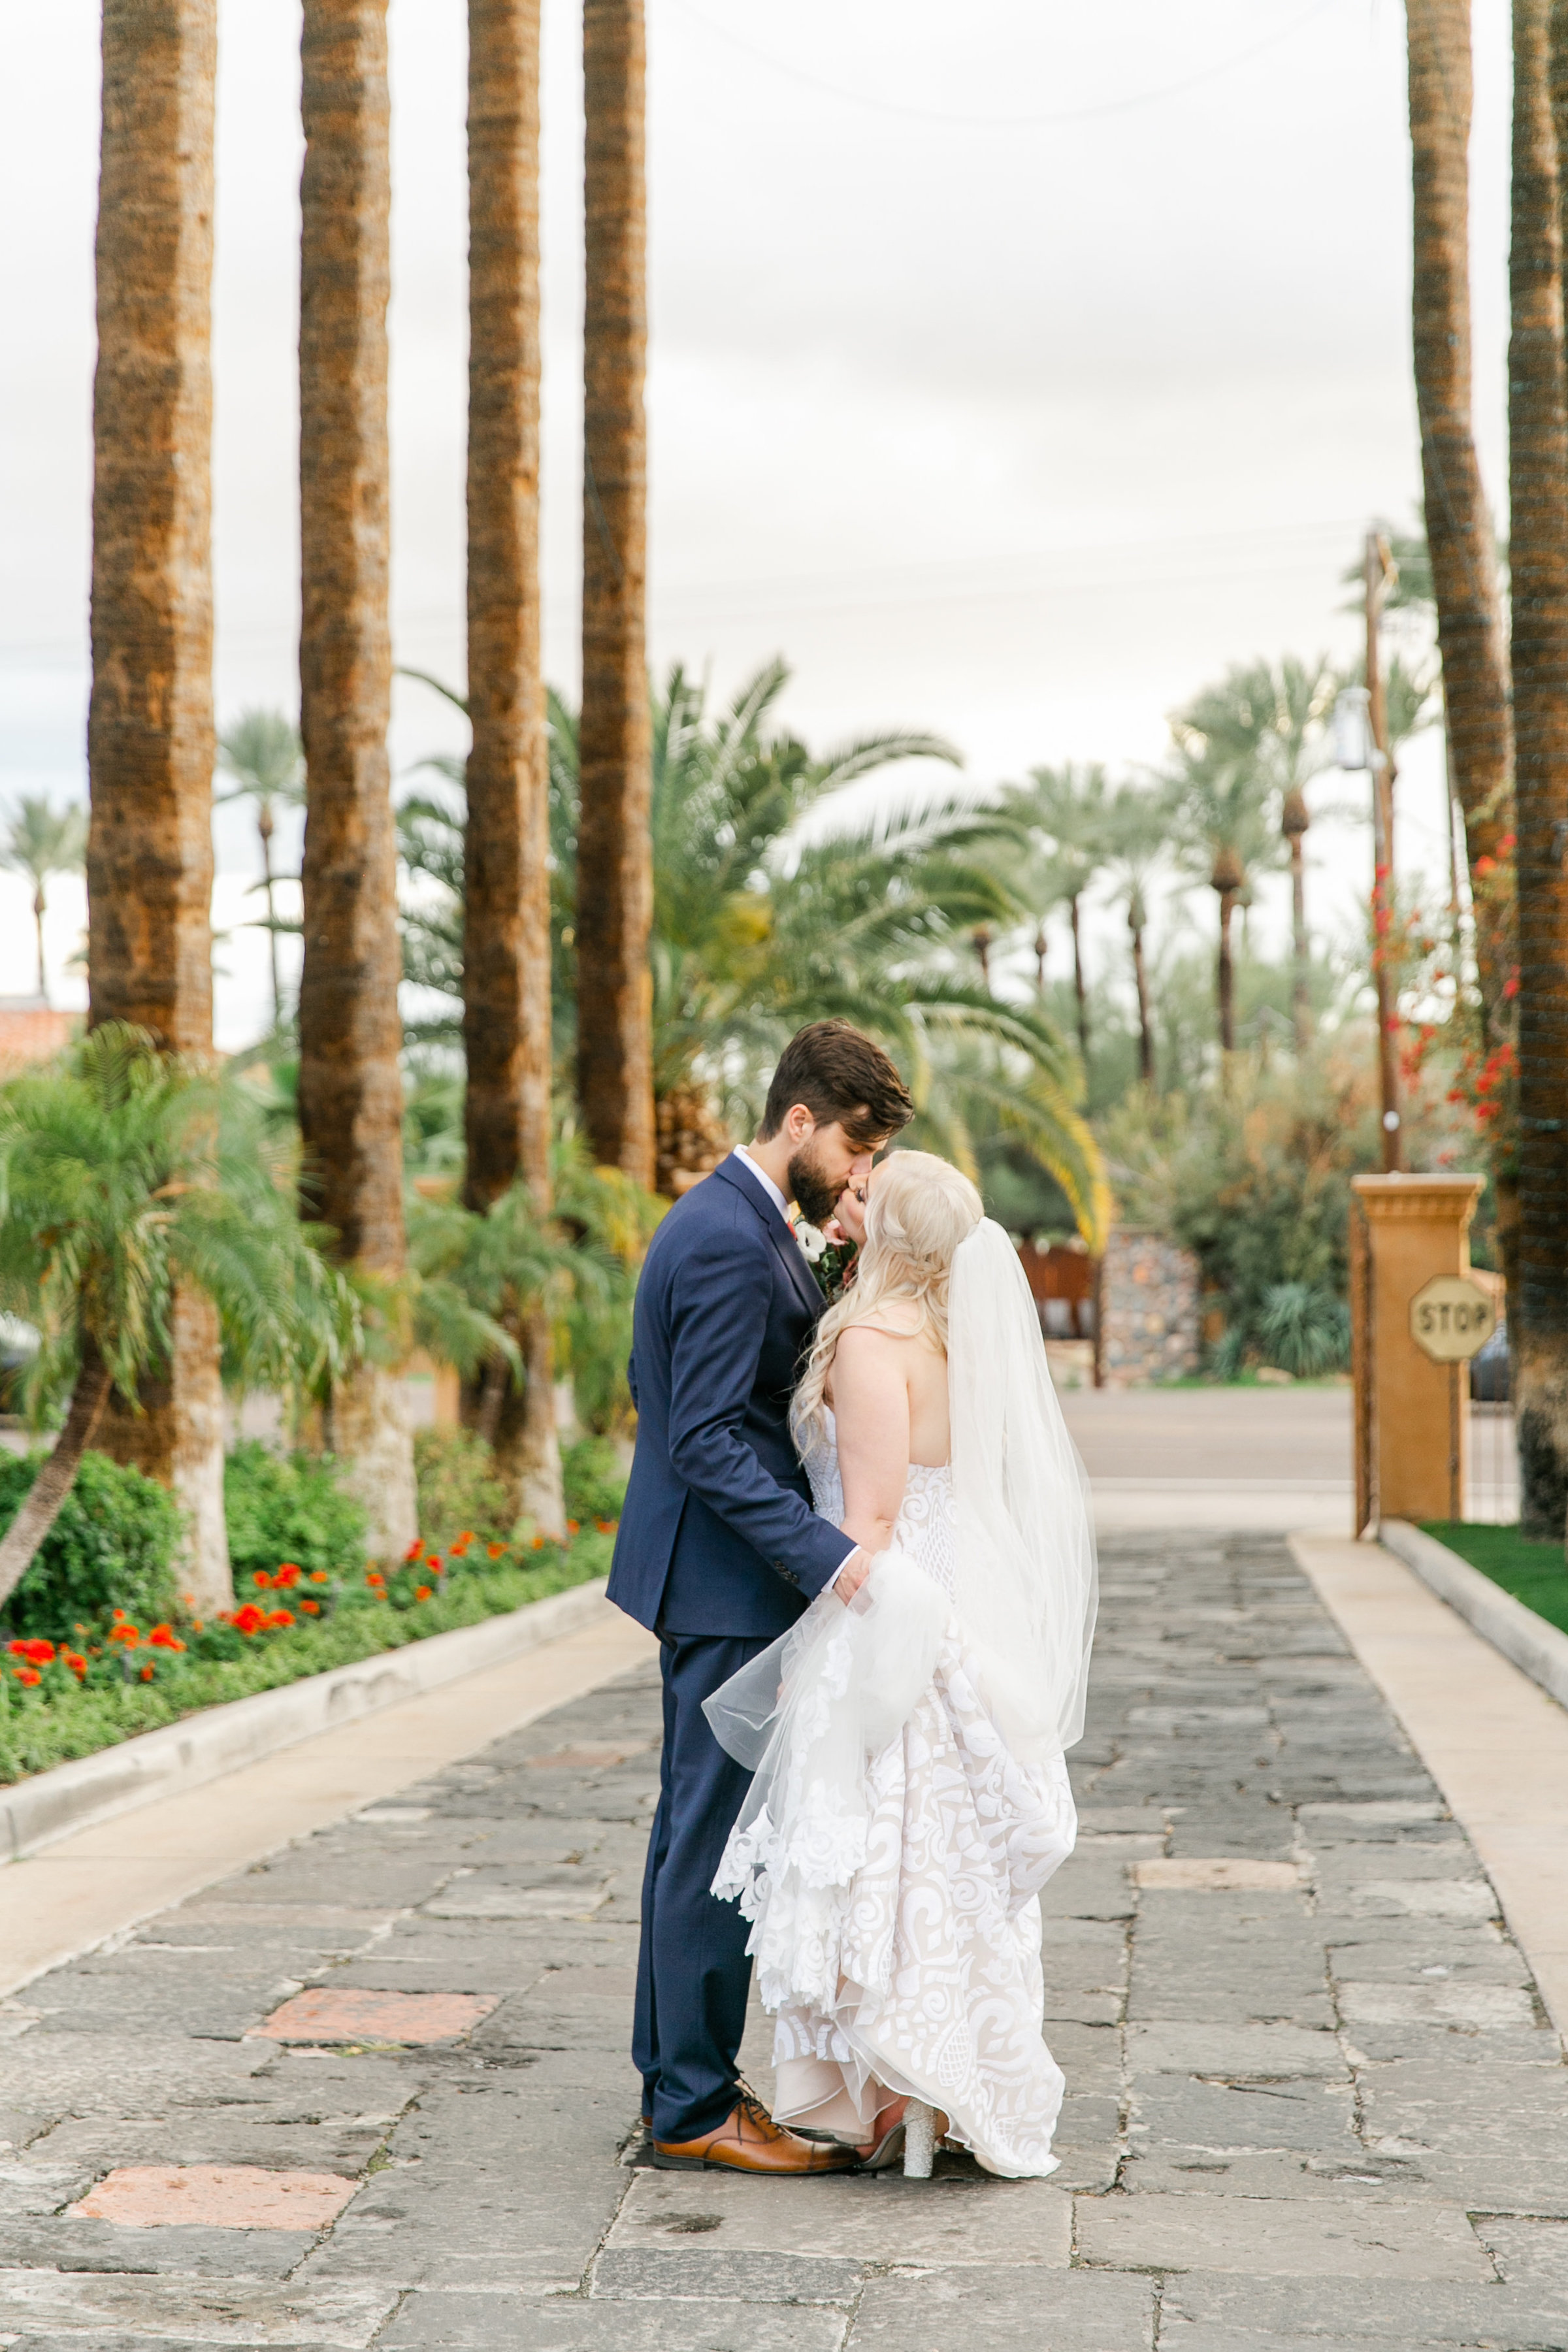 Karlie Colleen Photography - The Royal Palms Wedding - Some Like It Classic - Alex & Sam-576